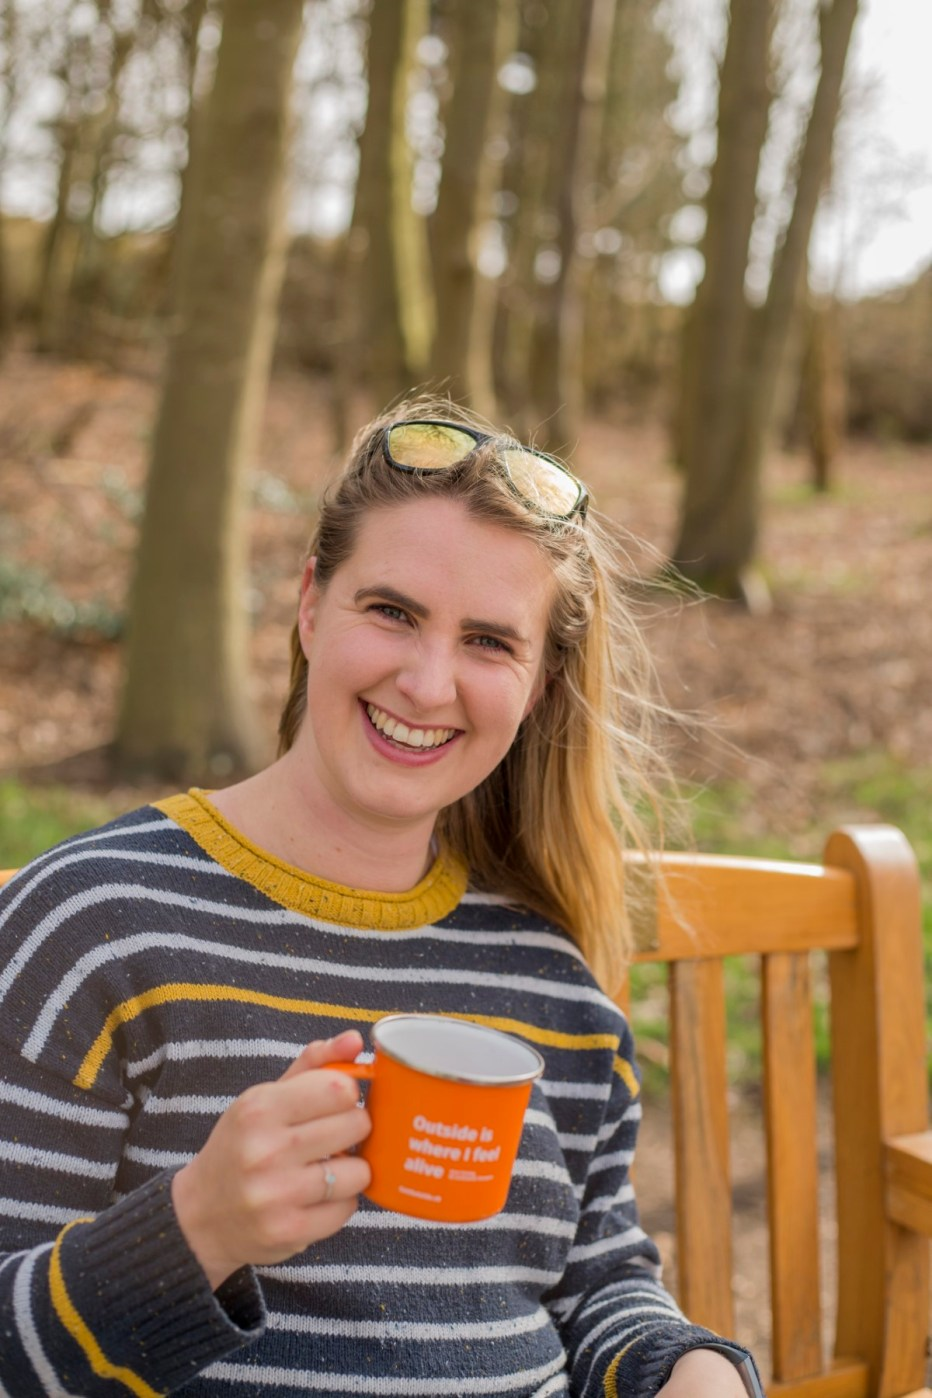 Splodz Blogz GetOutside Interviews | Charlotte Ditchburn, Public Rights of Way Explorer